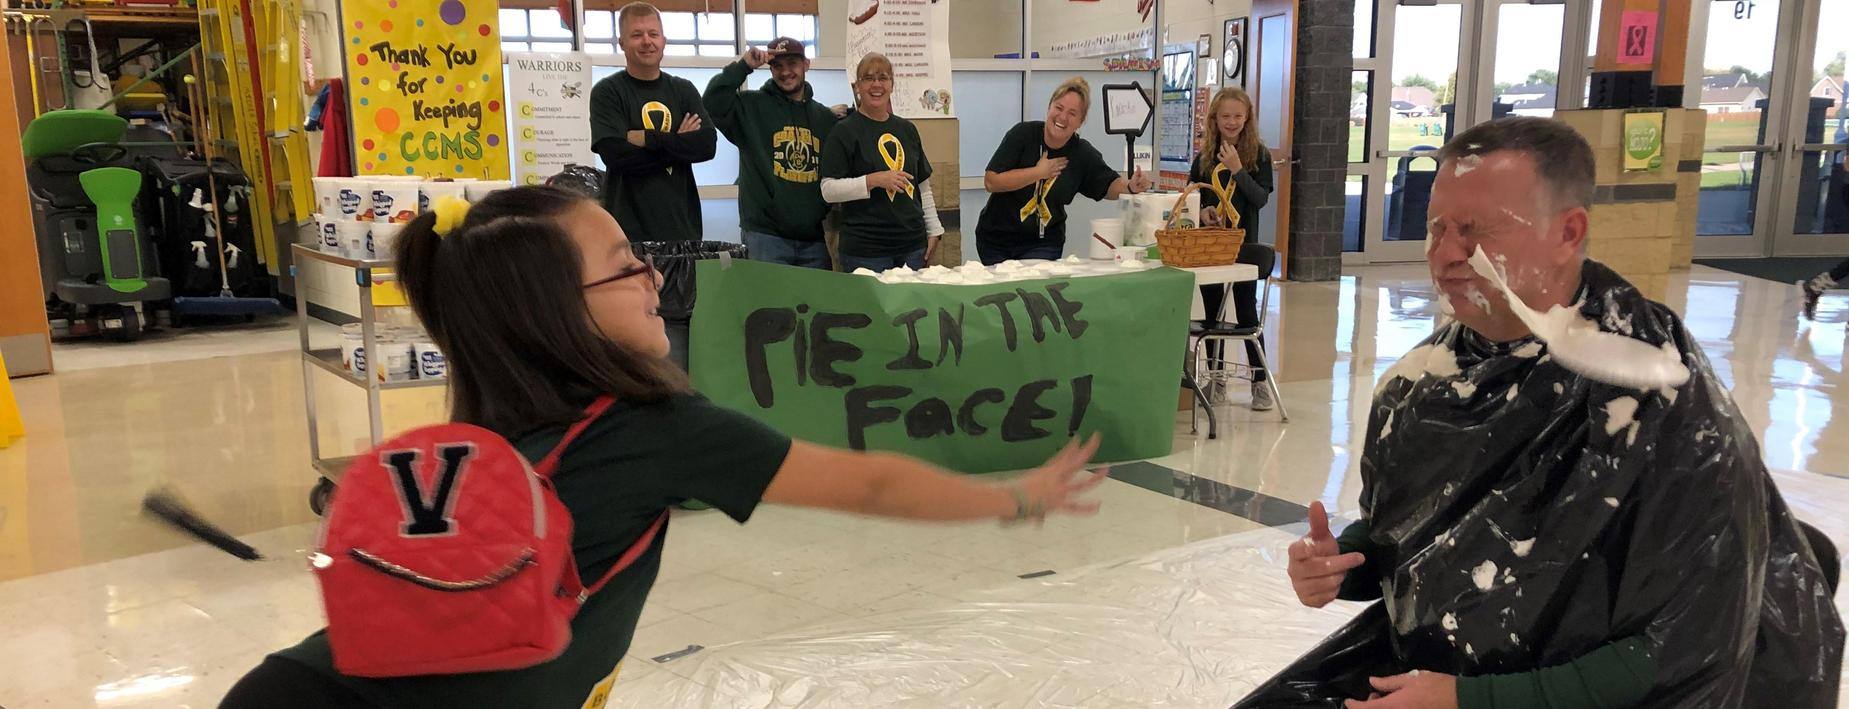 pie in the face